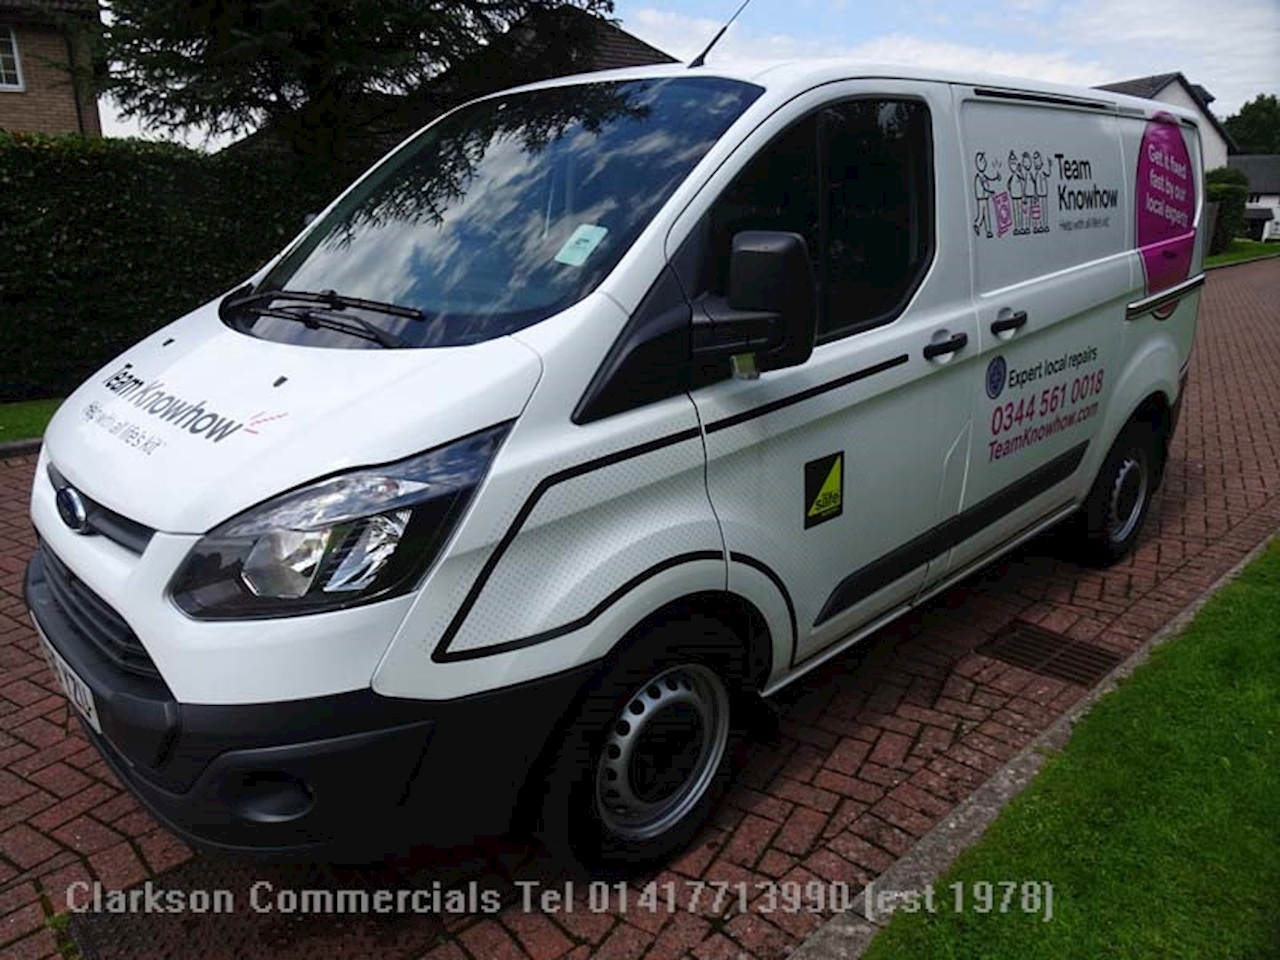 Ford Transit Custom 2.0 TDCi 340 Panel Van 5dr Diesel Manual L1 H1 (172 g/km, 128 bhp) Panel Van 2.0 Manual Diesel